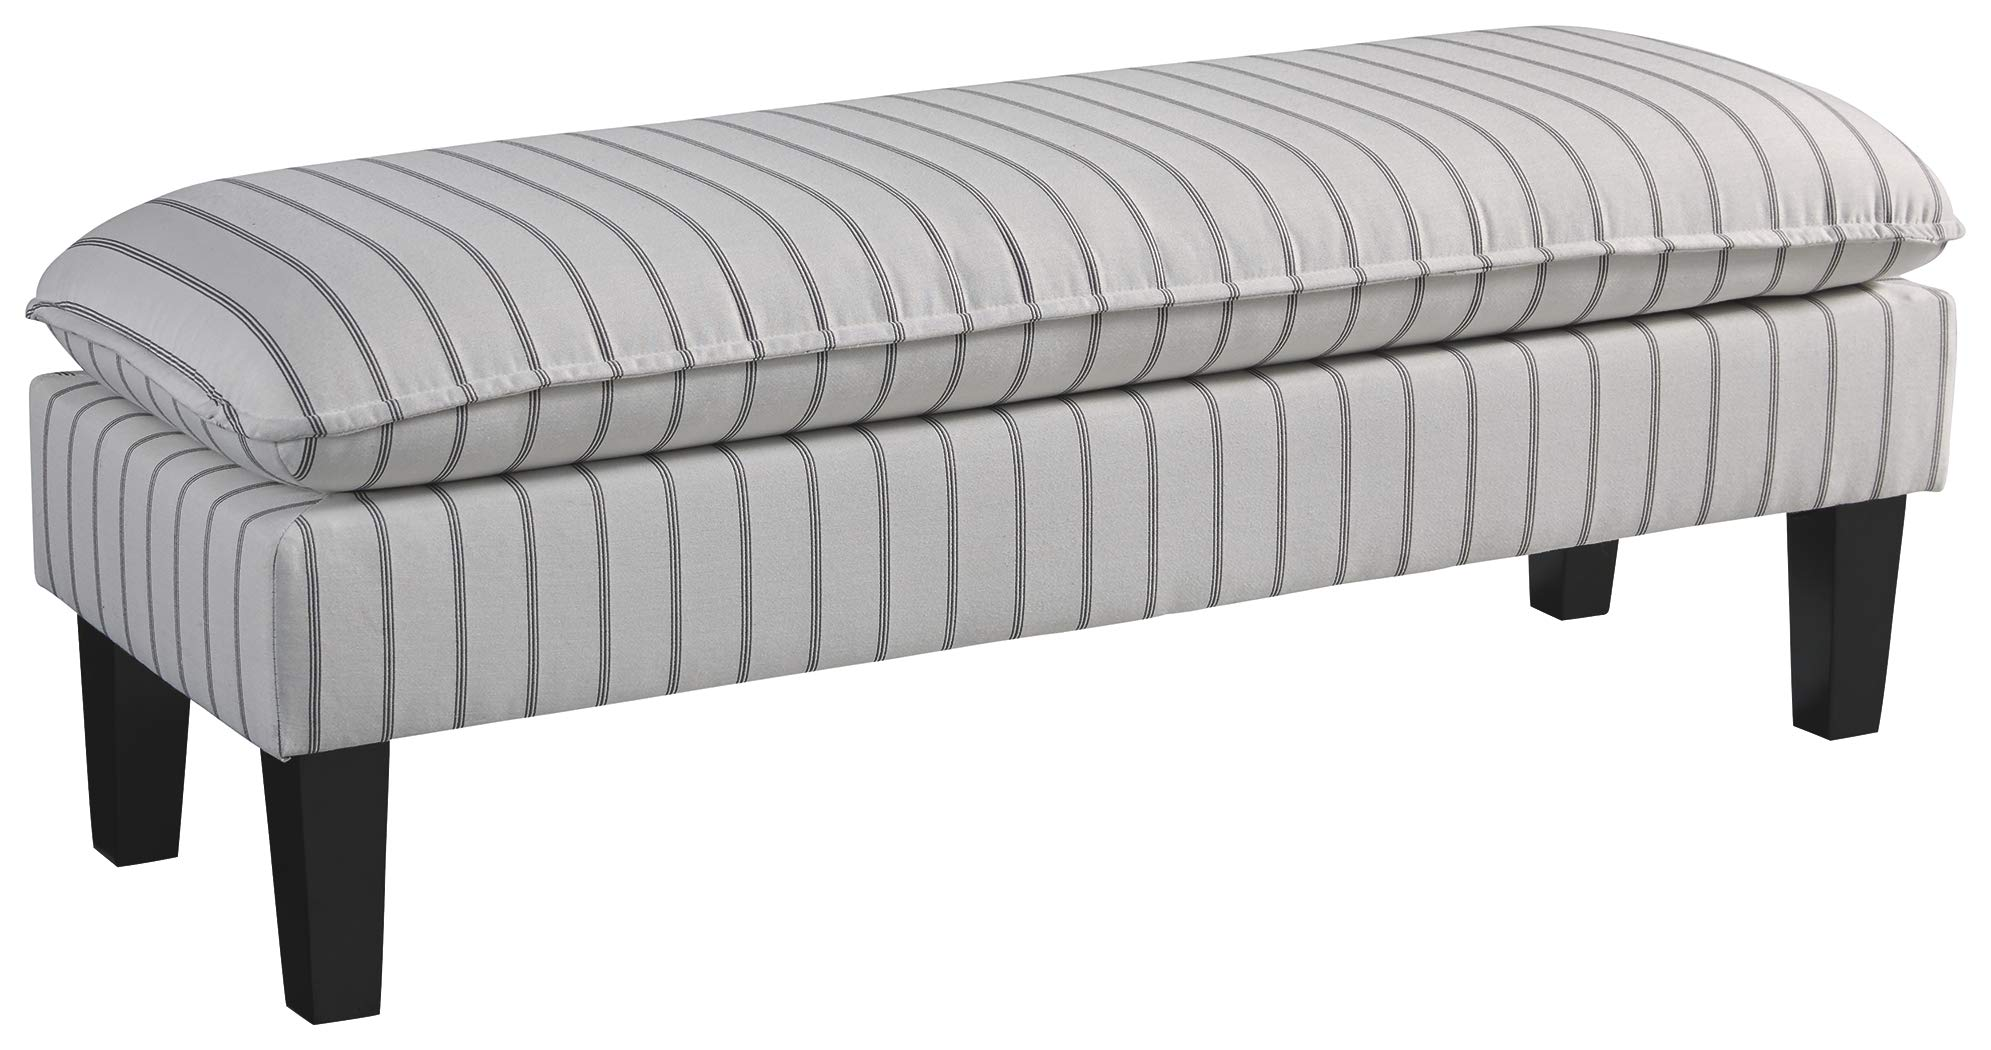 Ashley Furniture Signature Design - Arrowrock Accent Bench - Traditional - Light Beige by Signature Design by Ashley